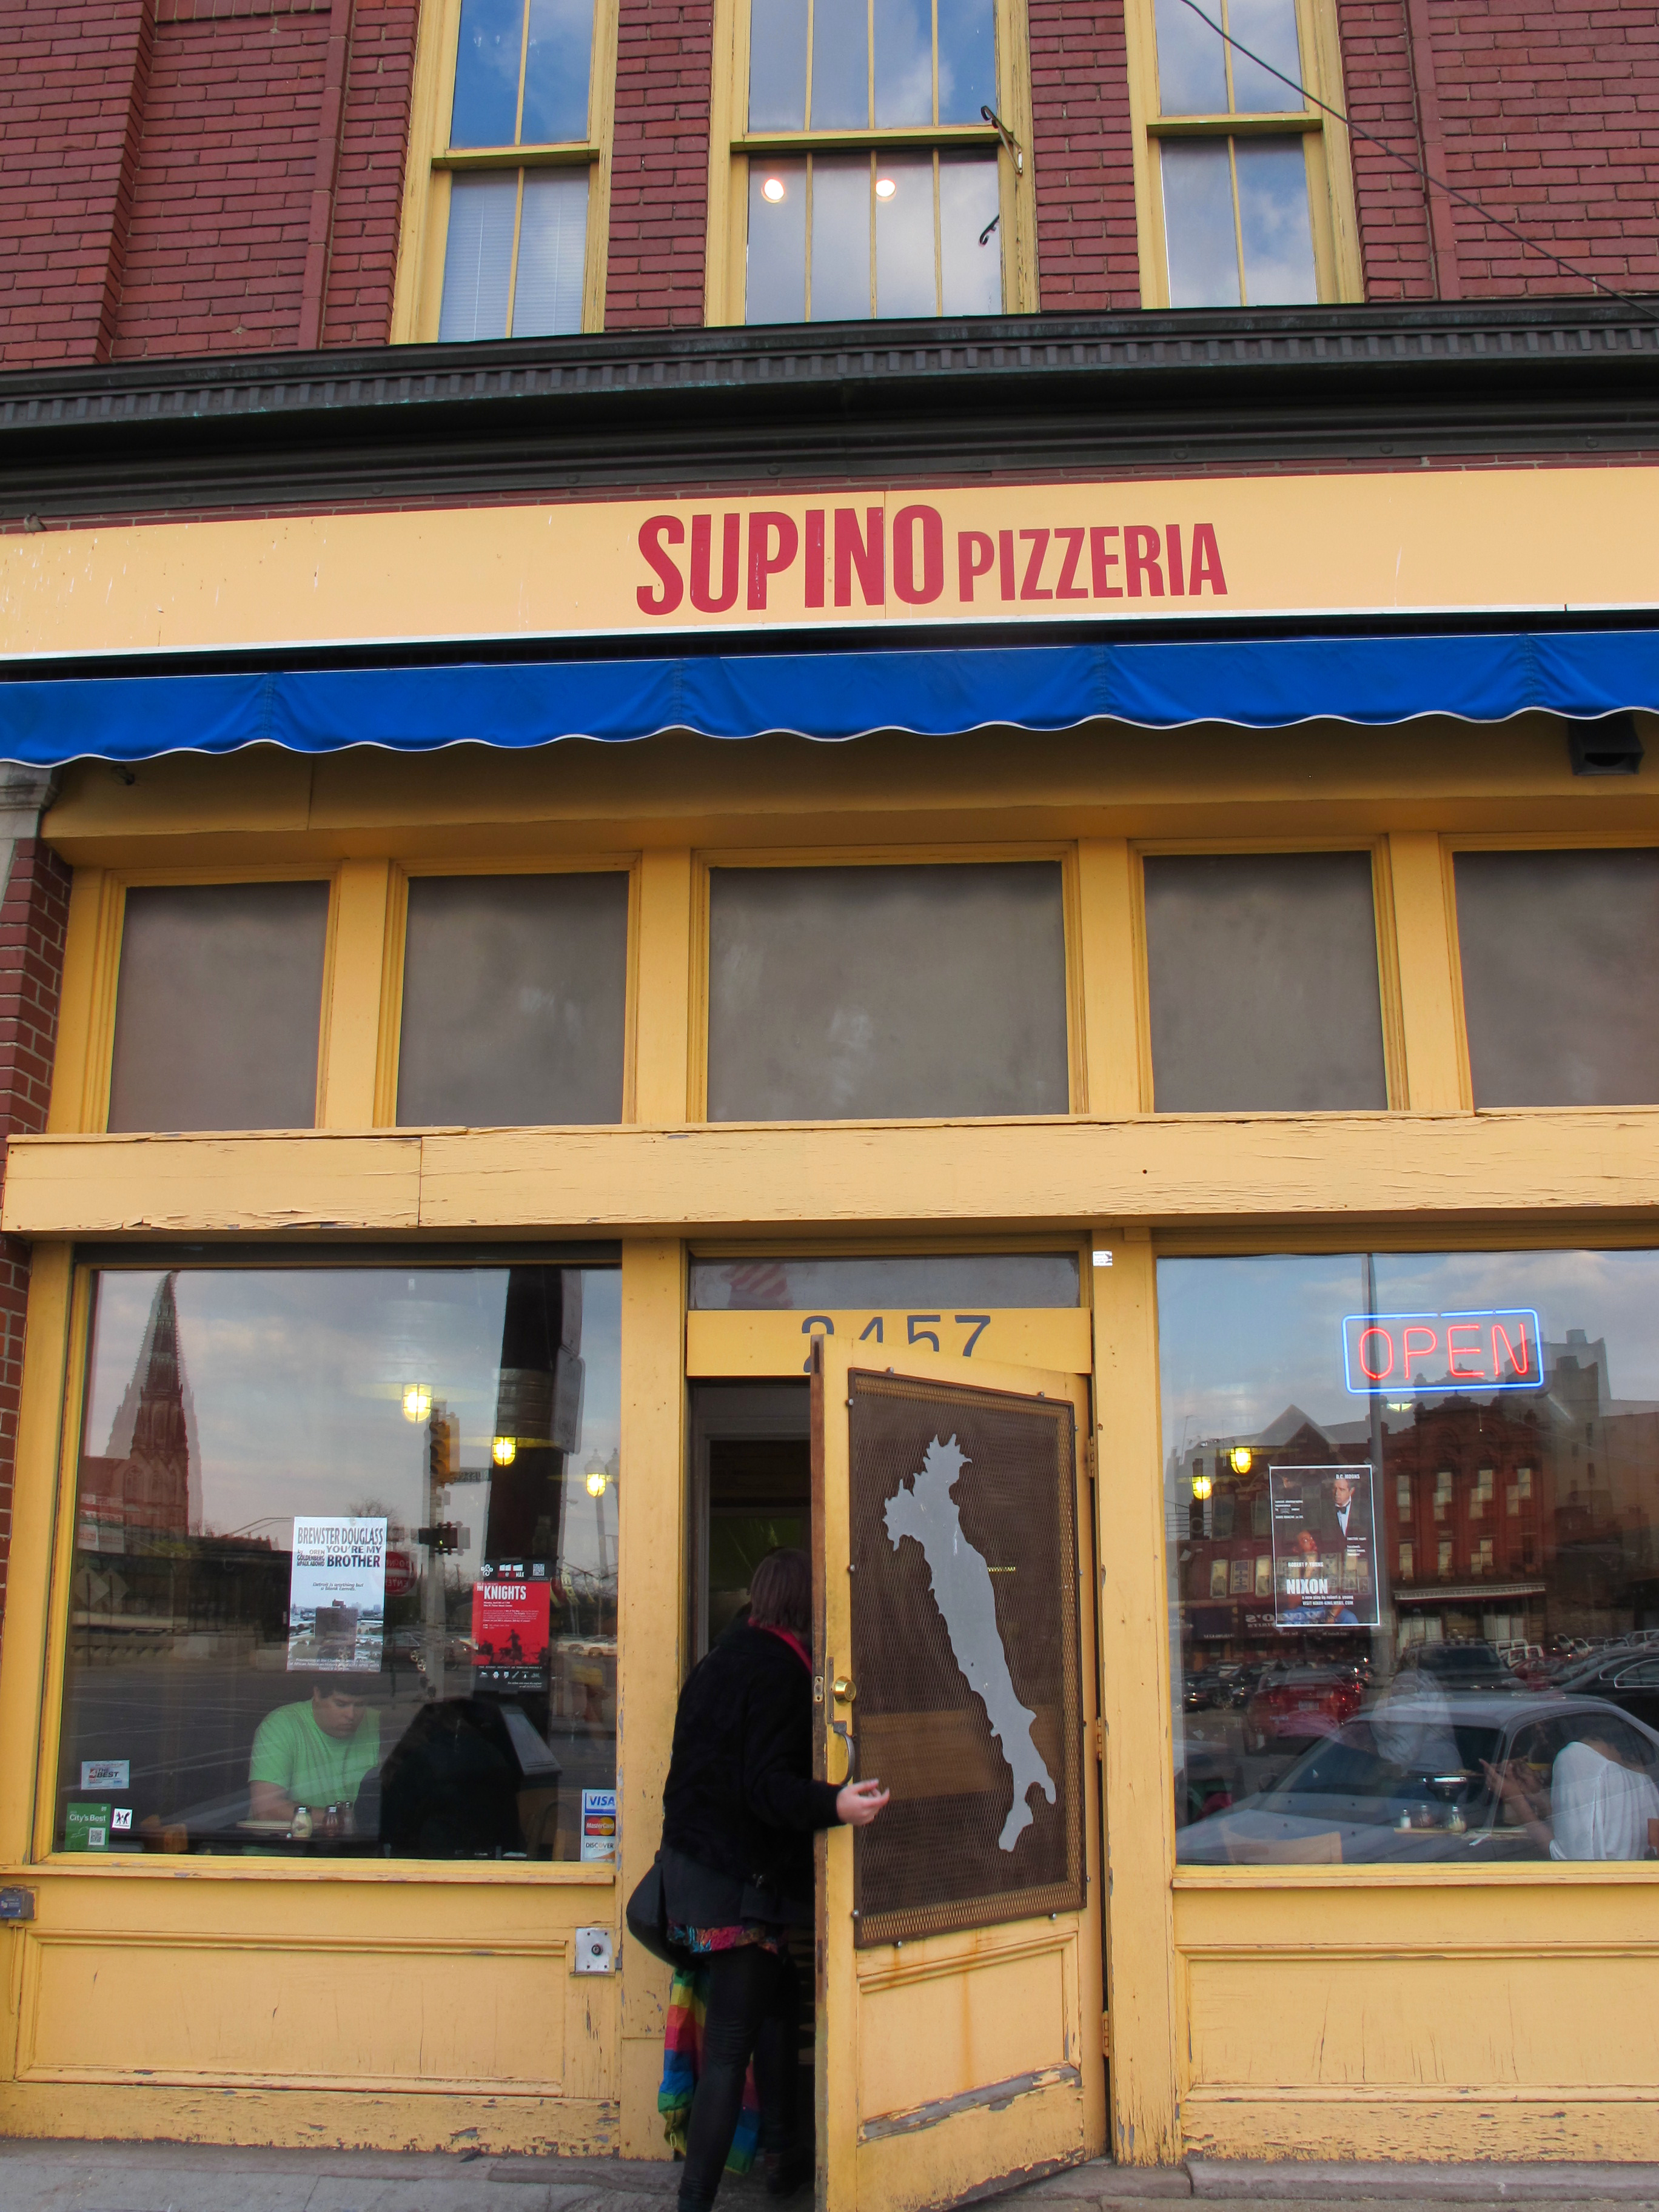 South Eastern Michigan S Premiere Kitchen: Road Food Report: Supino Pizzeria